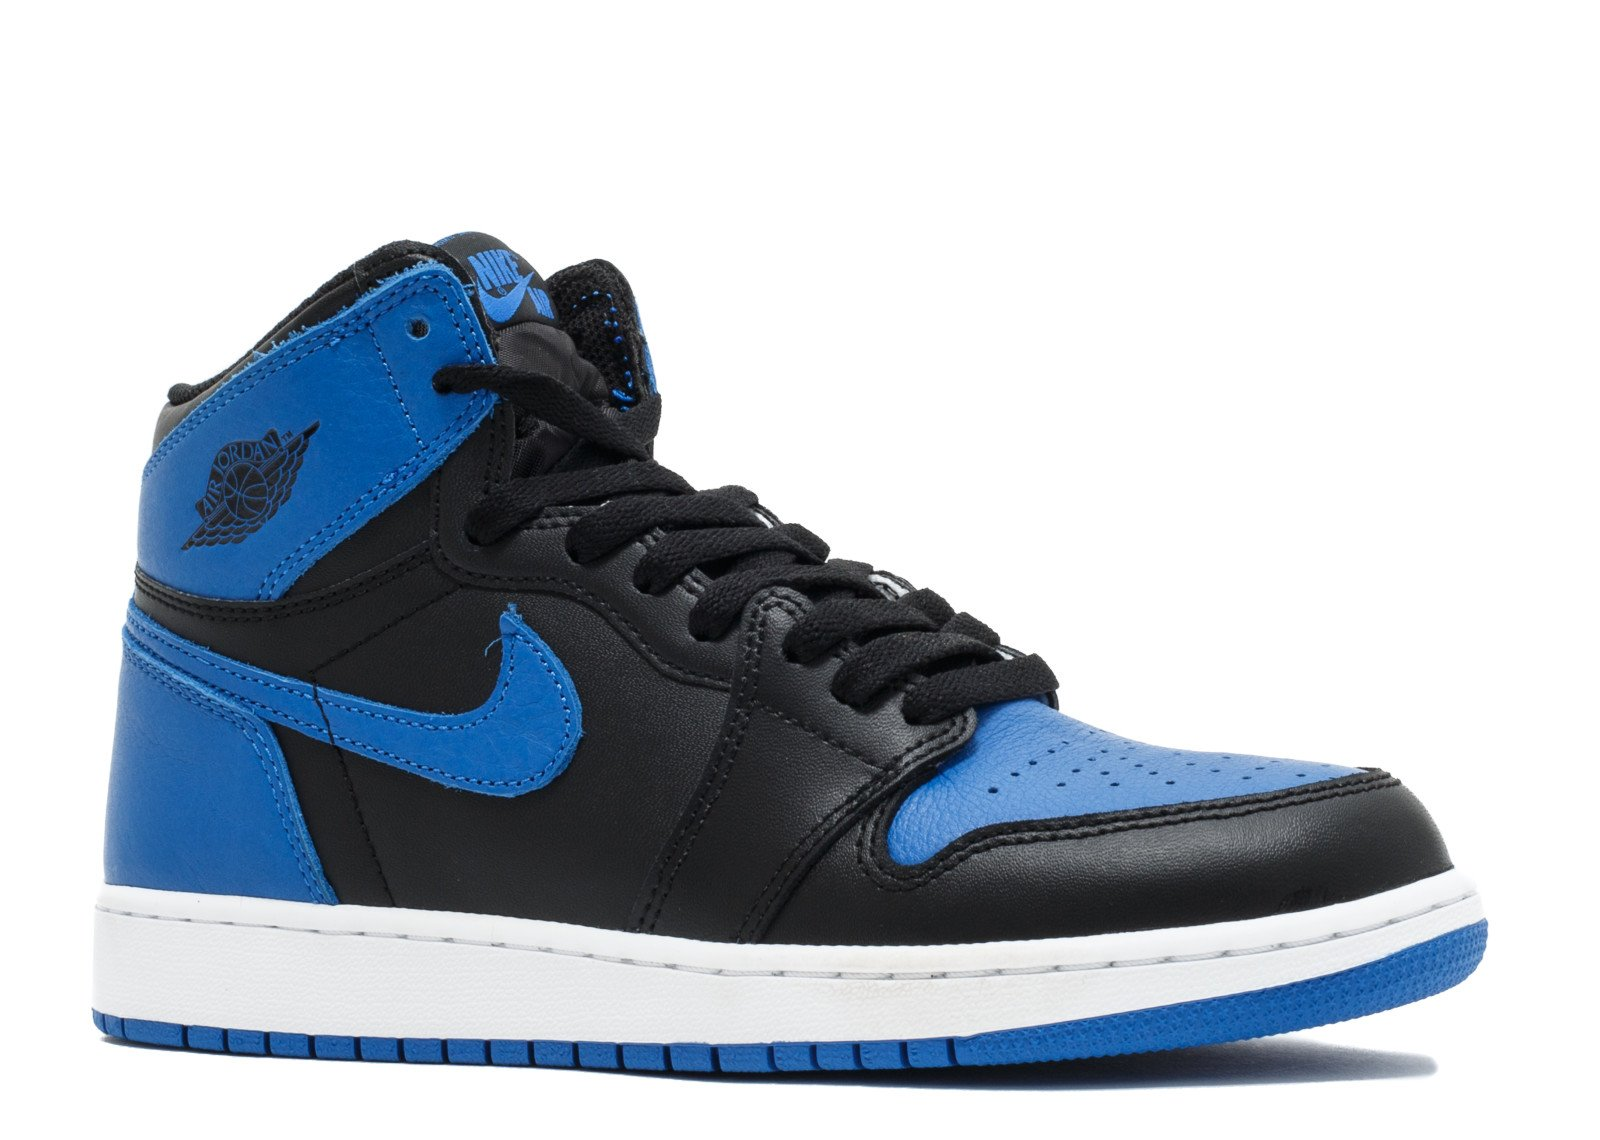 Nike Kid's Air Jordan AJ 1 Retro OG High Top Shoe, Black/Royal/White, 6 M US Big Kid